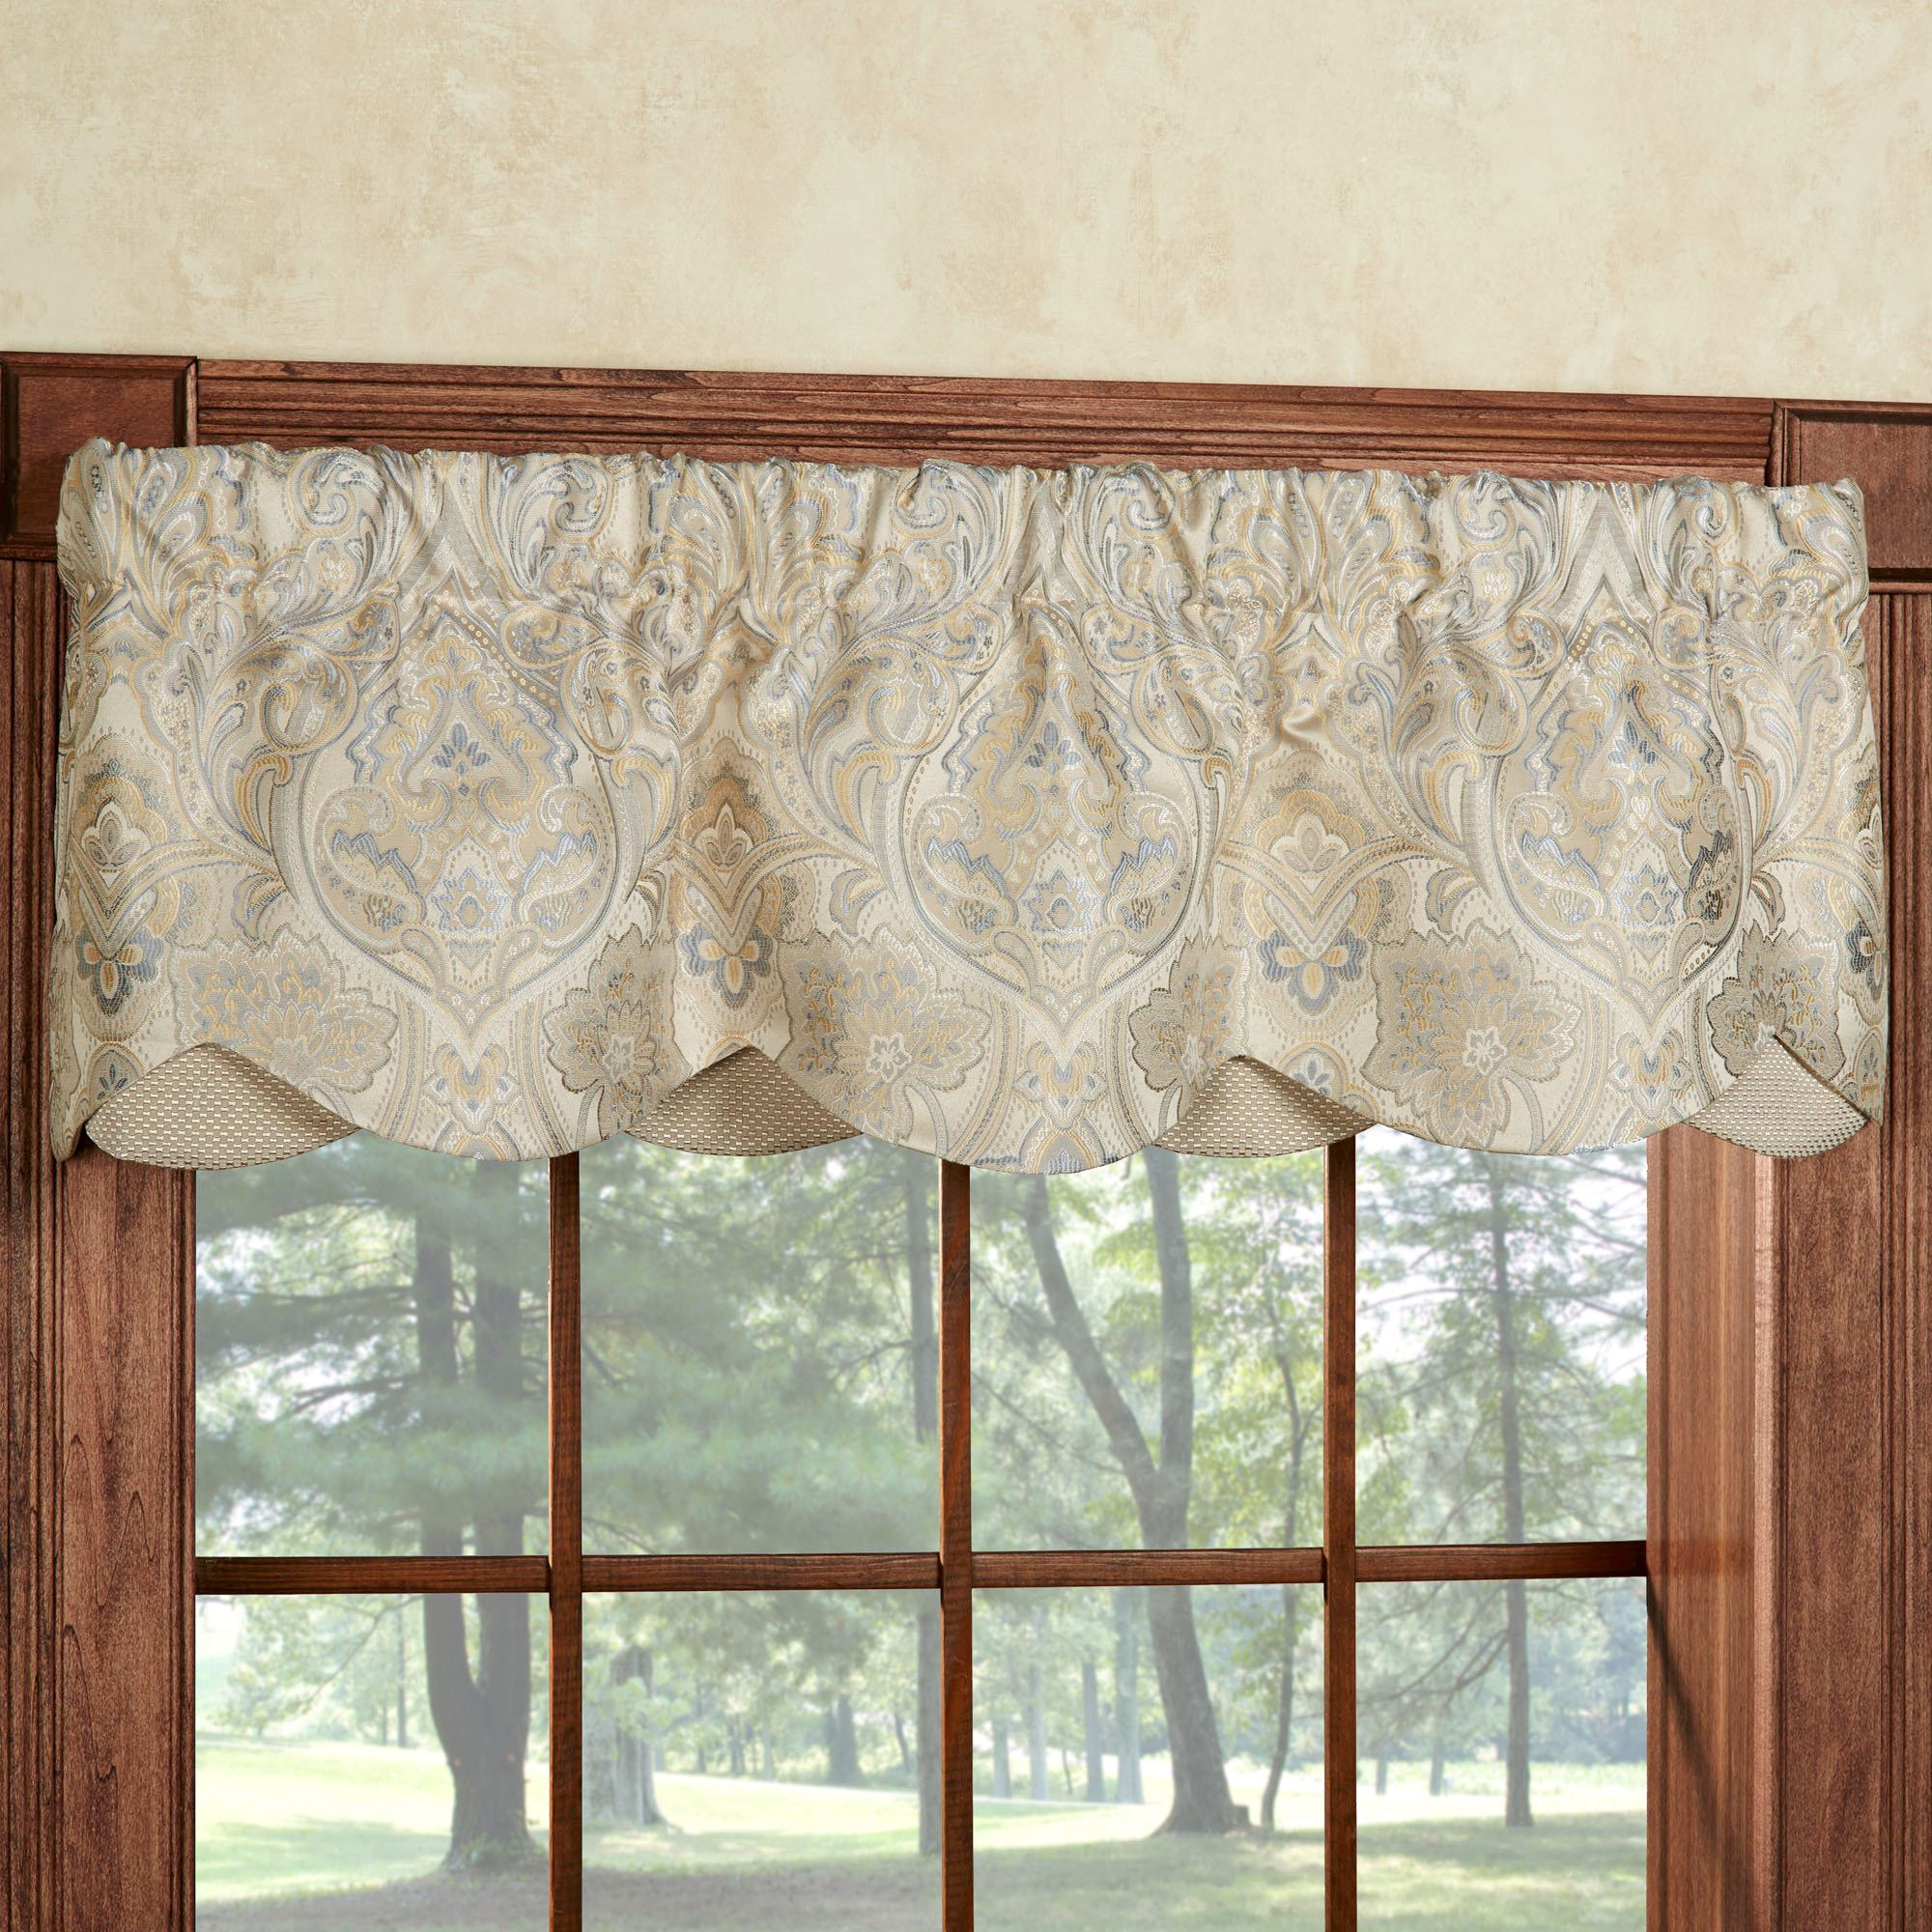 in home cornice carpentryland box desgin rustic interior image cedar memes window photos valance misadventures wood